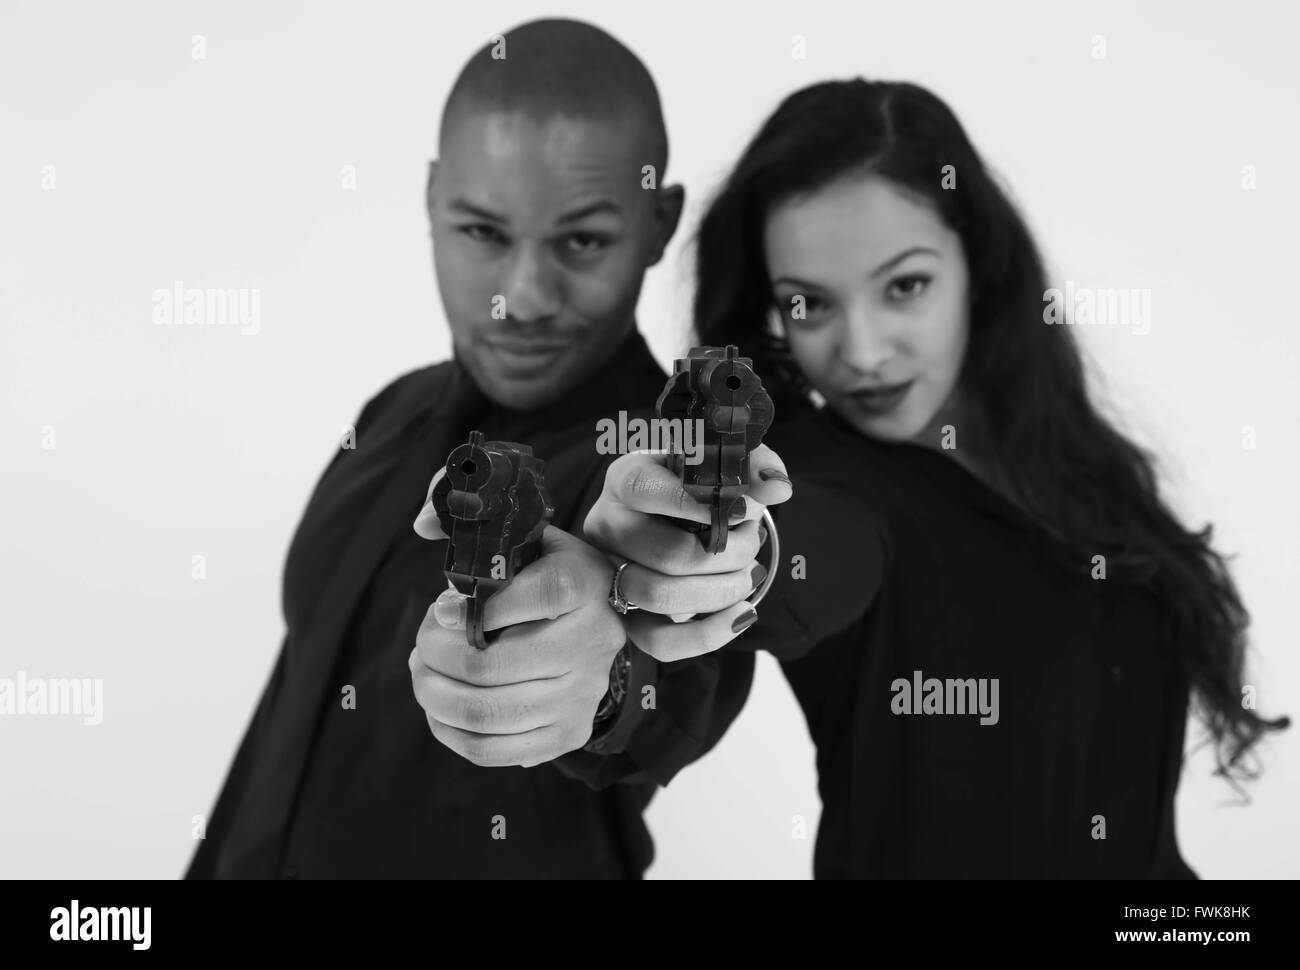 Portrait Of Fashionable Gangster Friends Aiming Gun At Camera Against White Background - Stock Image